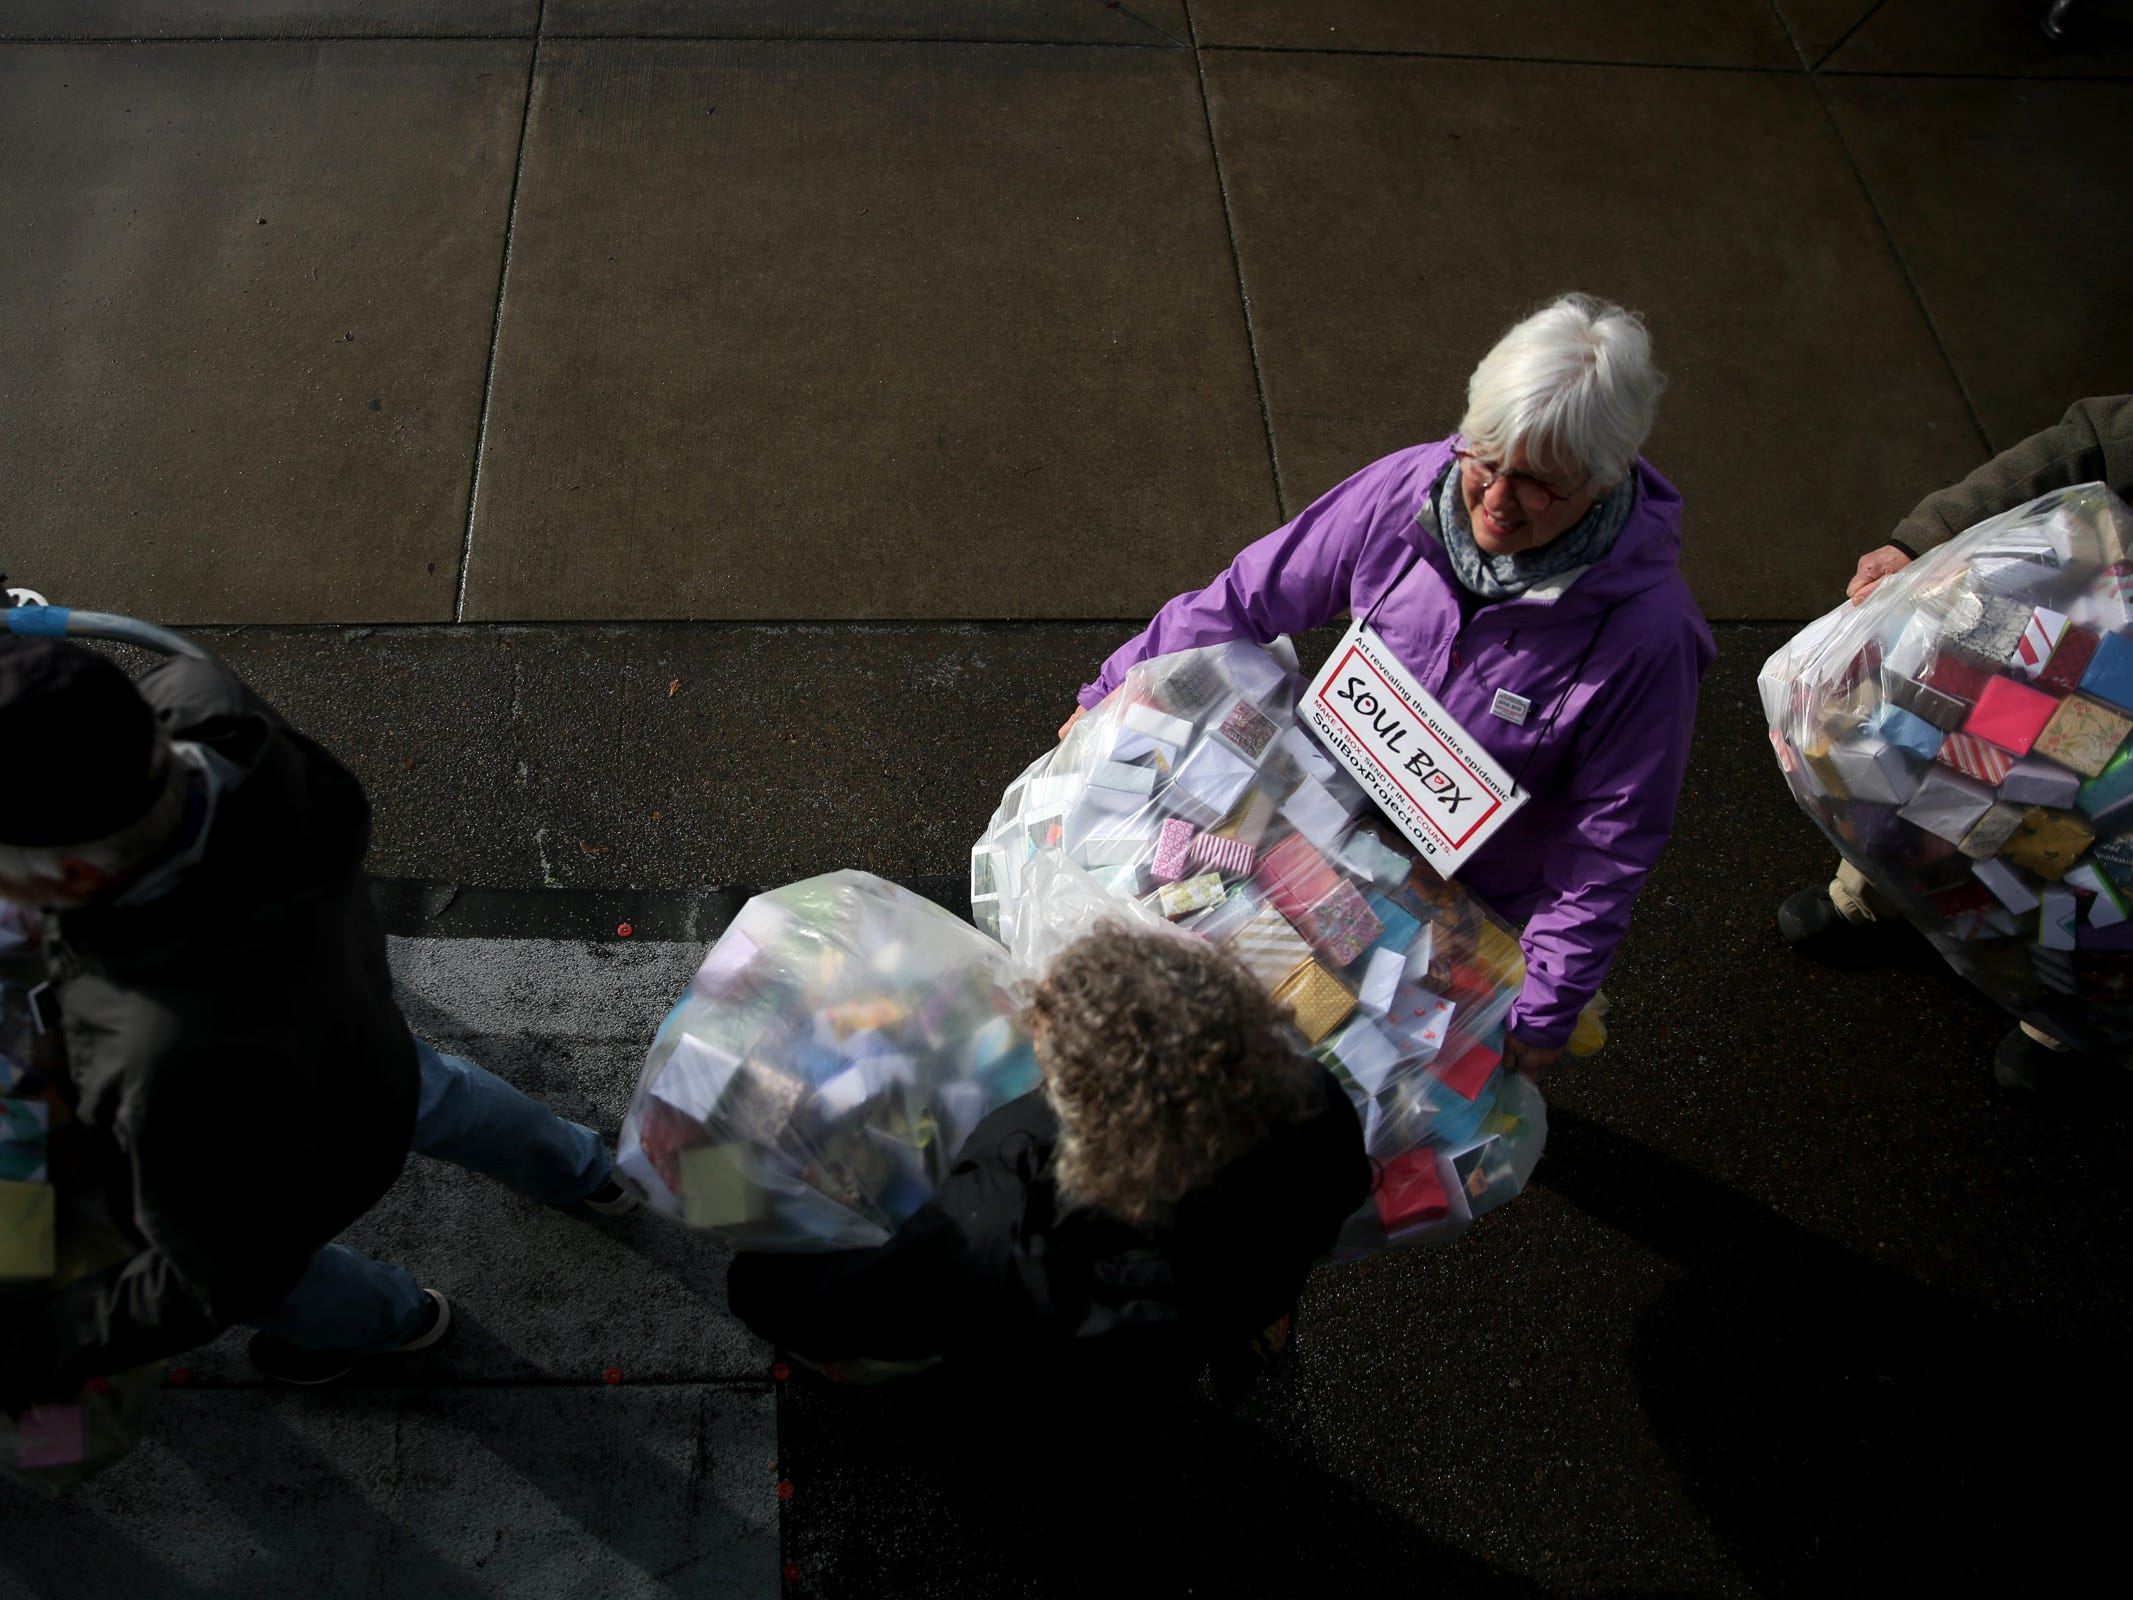 Sarah Newhall, of Portland, and others deliver and display more than 37,000 handmade origami boxes, representing victims of gun violence, at the Oregon State Capitol in Salem on Friday, Feb. 15, 2019. The Soul Box Project, started by Portland artist Leslie Lee, aims to reveal the enormity of the gun fire epidemic.